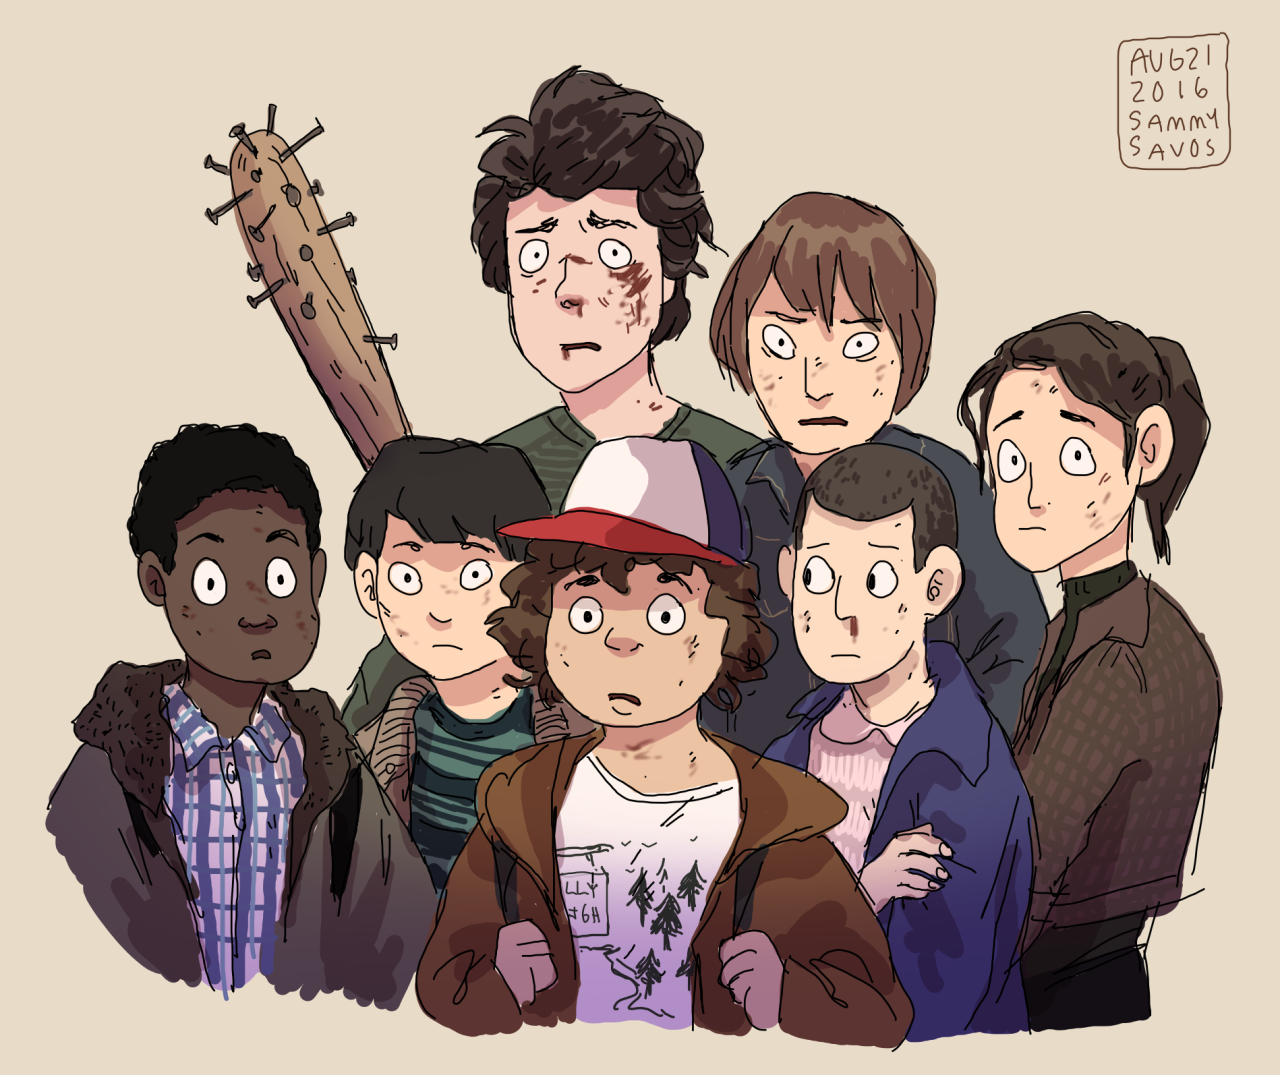 Stranger Kids Stranger Things Art By Hamotzi Featuring Lucas Sinclair Mike Wheeler Dus Stranger Things Art Stranger Things Fanart Stranger Things Funny